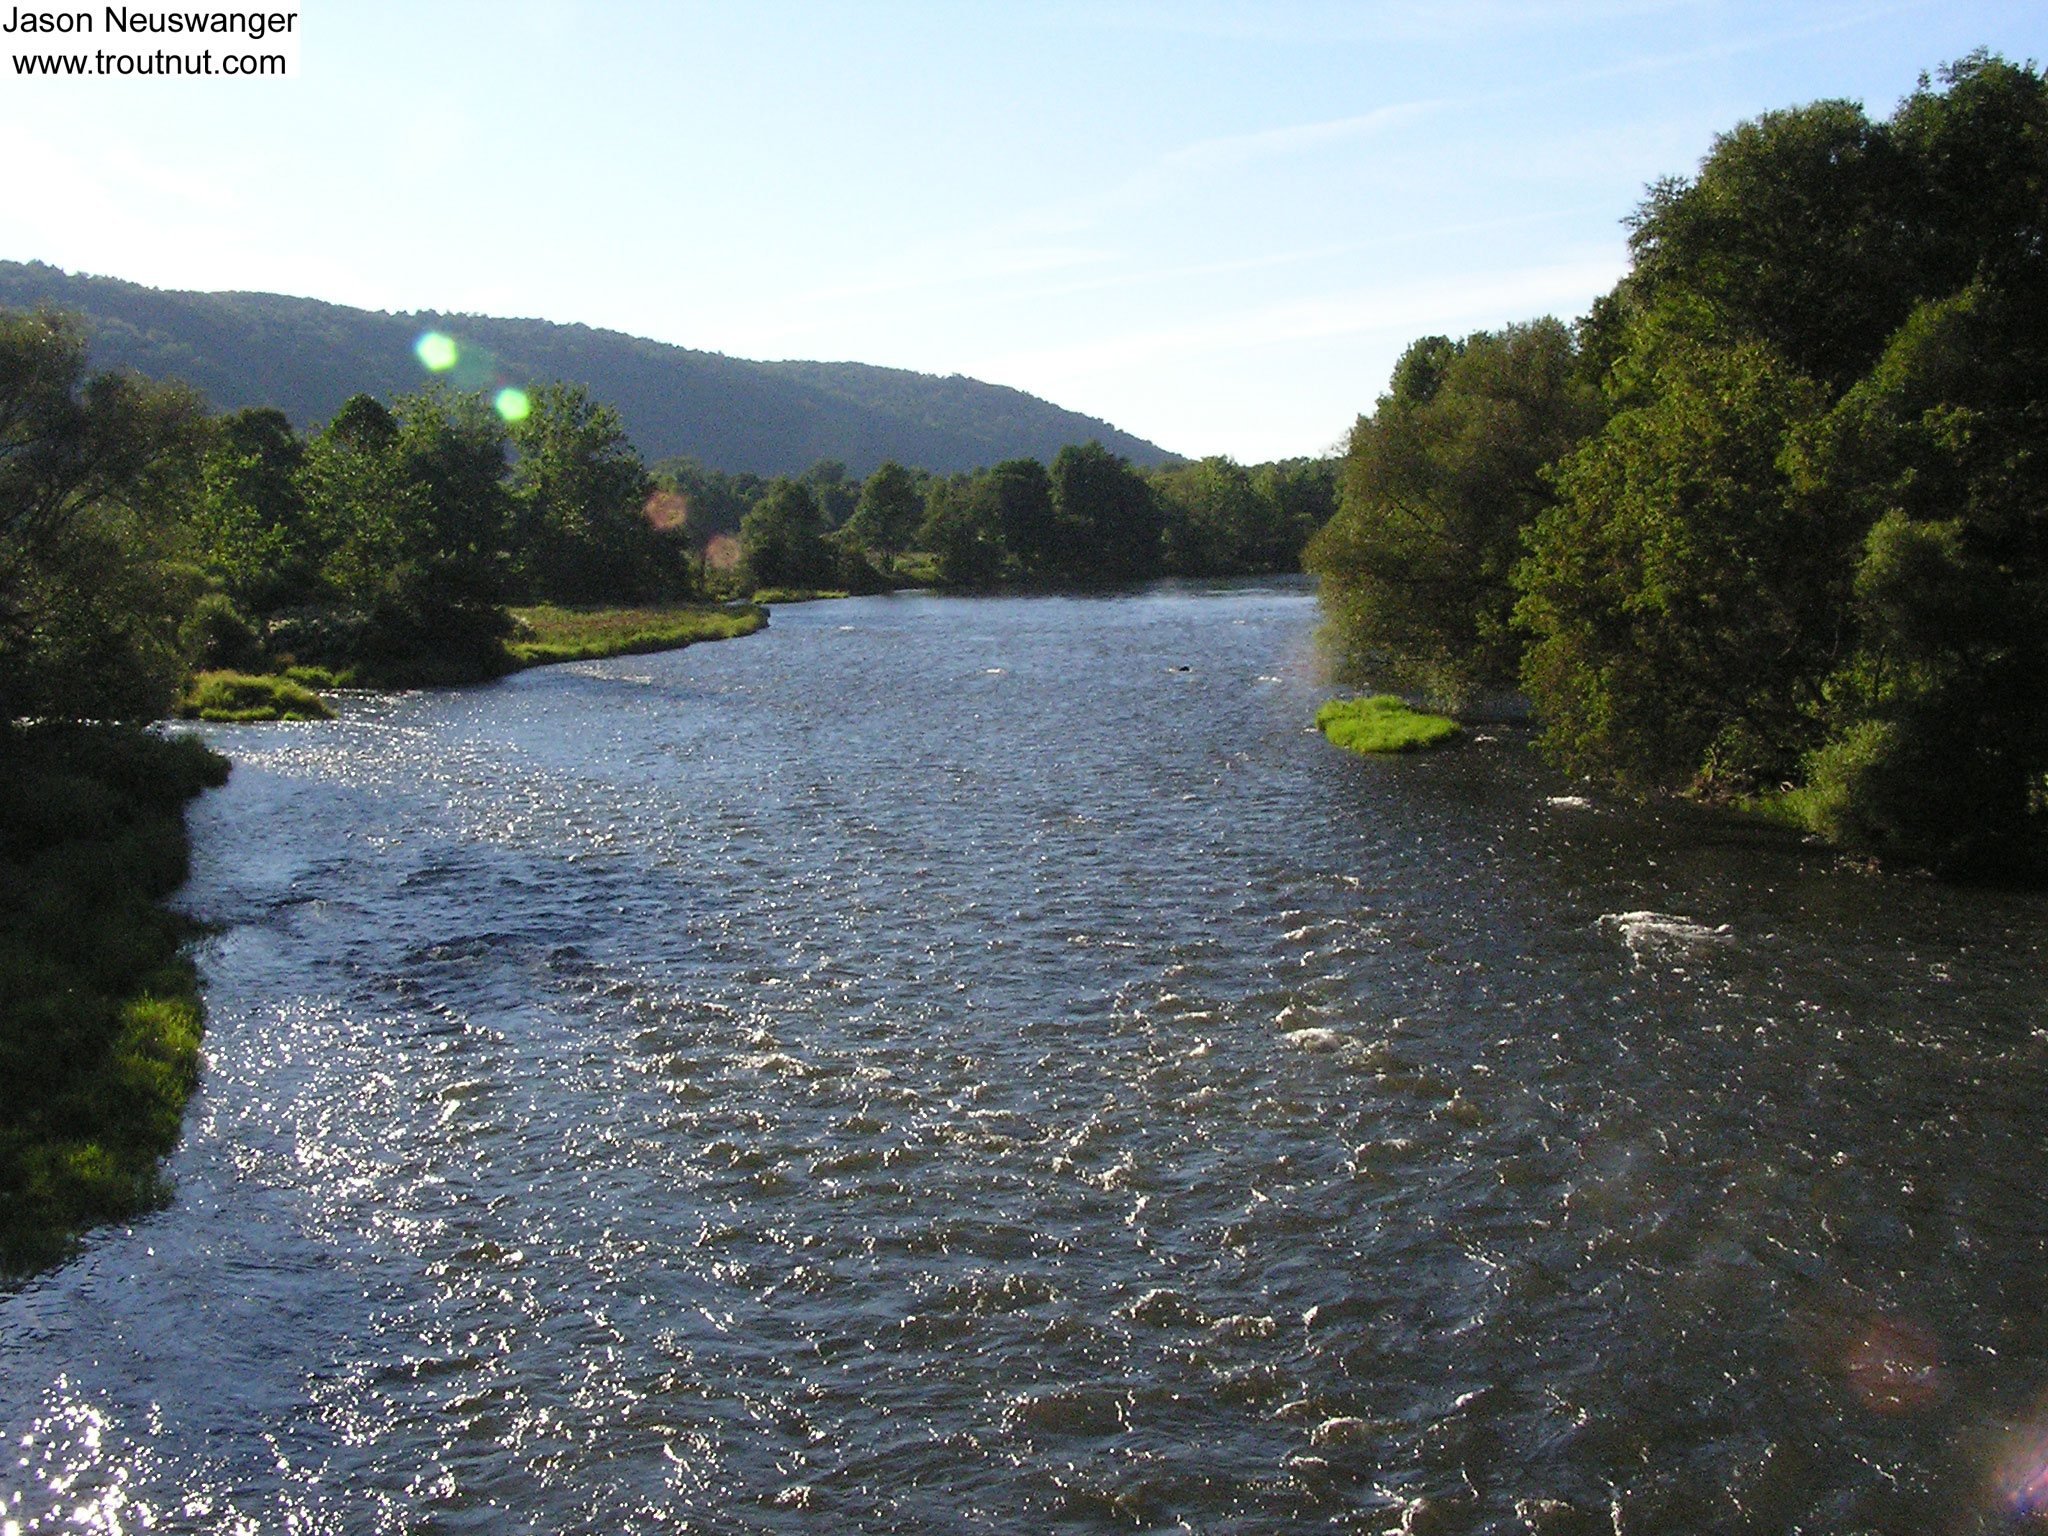 This is one of the most famous trout streams in the country. From the West Branch of the Delaware River in New York.